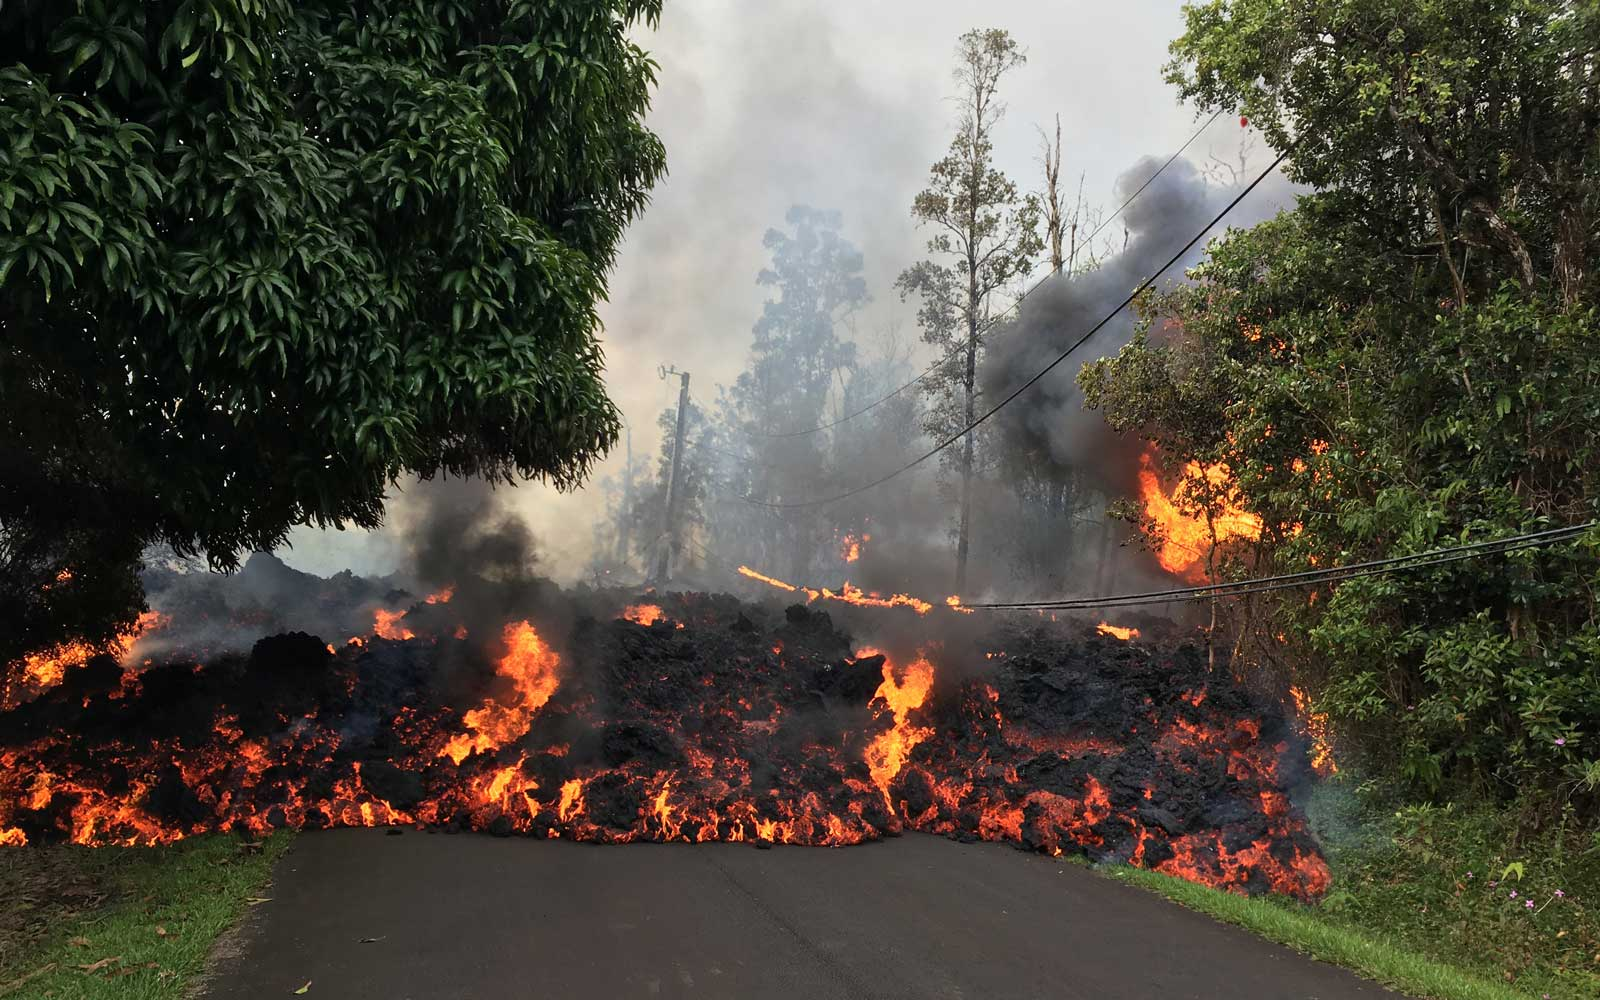 Photos and Videos Show the Incredible Destruction From the Kilauea Volcano Eruption